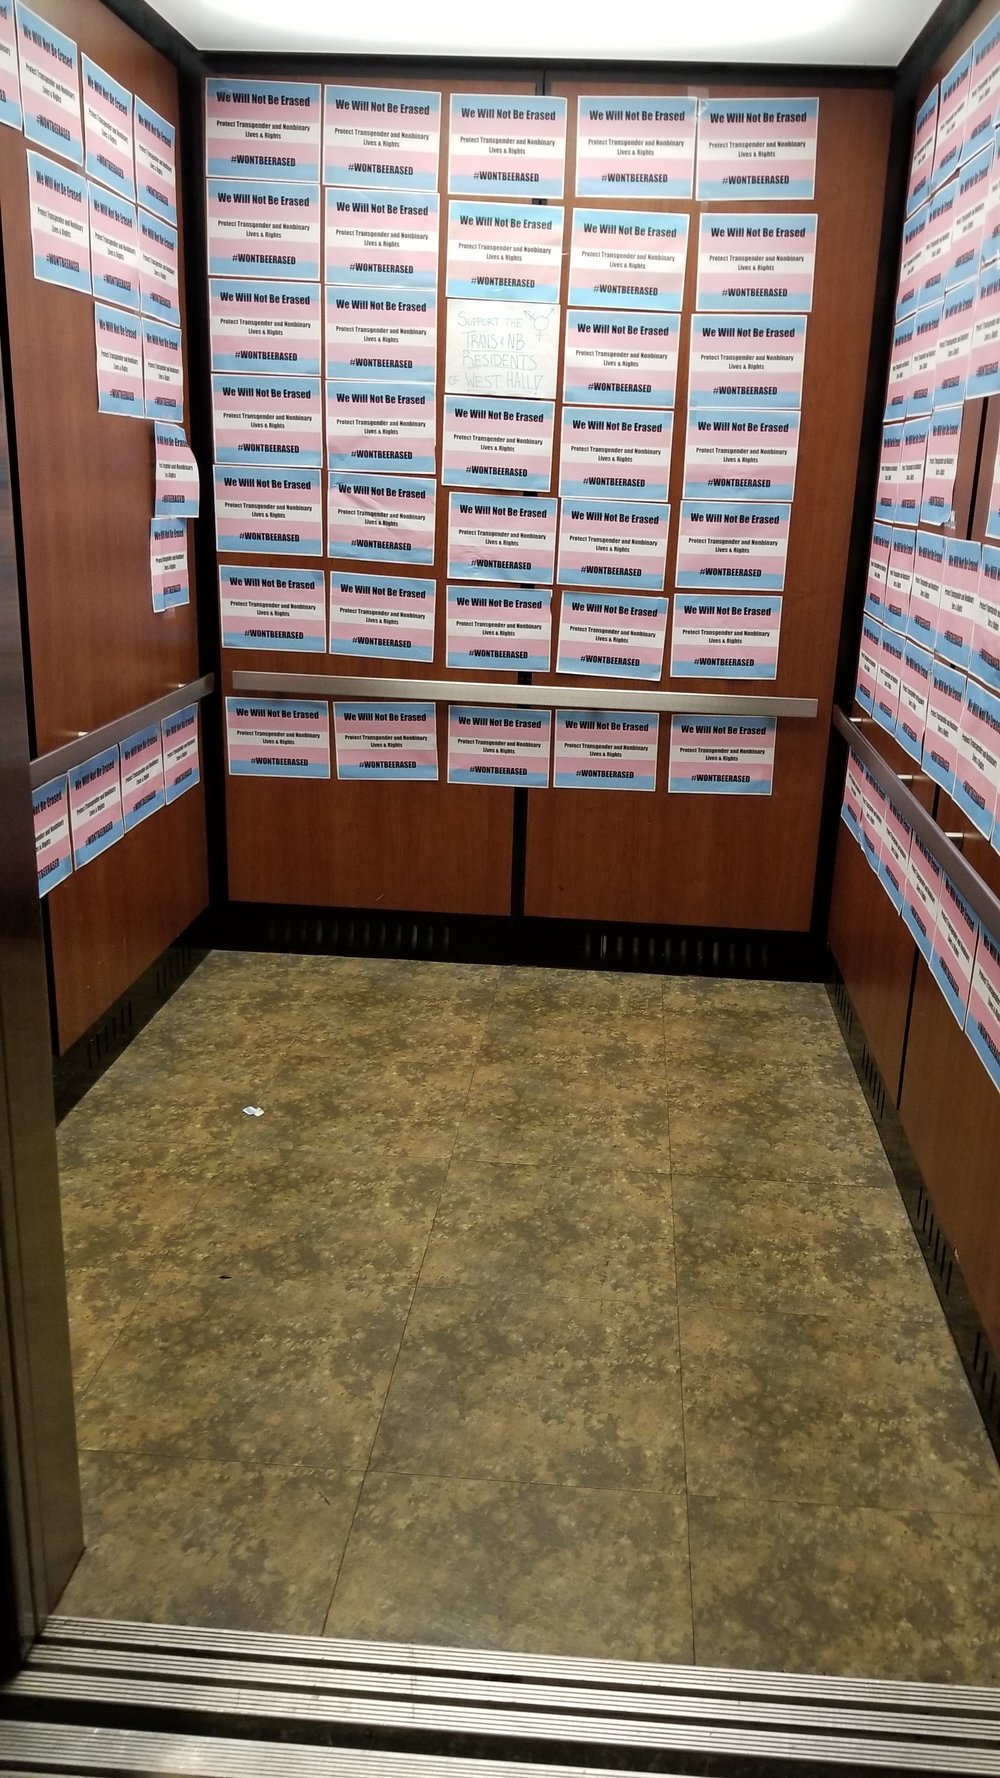 Elevator in West Hall covered with Trans support posters. Photo by Cheyenne Roper.